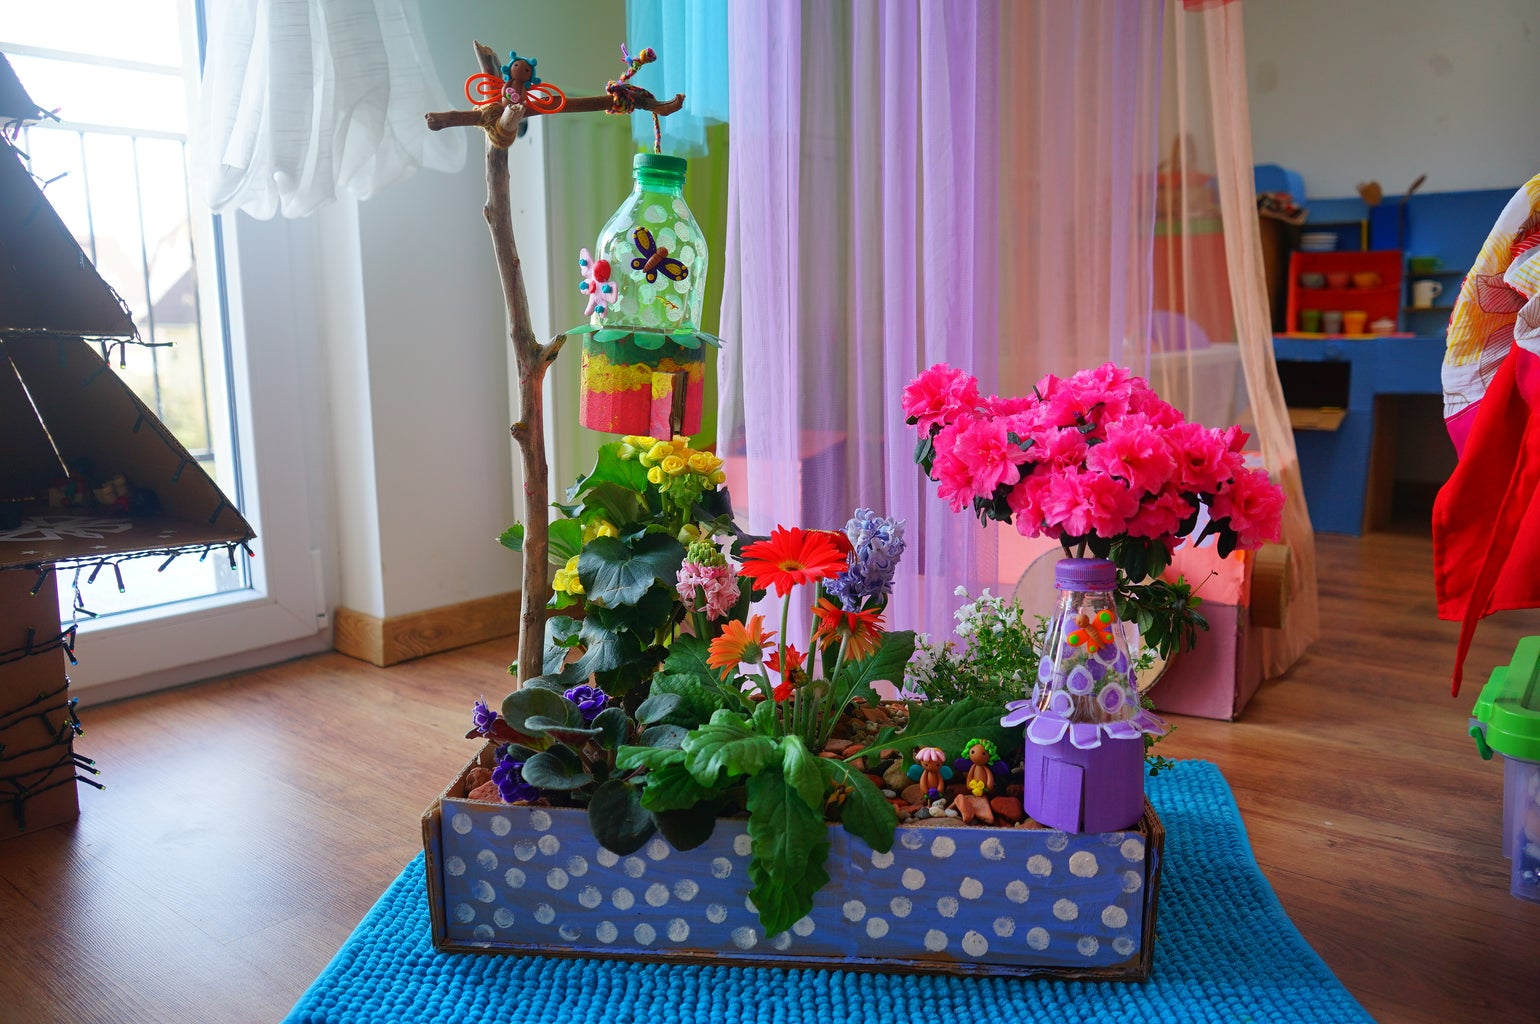 Fairy Garden Made From Re-purposed Plastic Waste